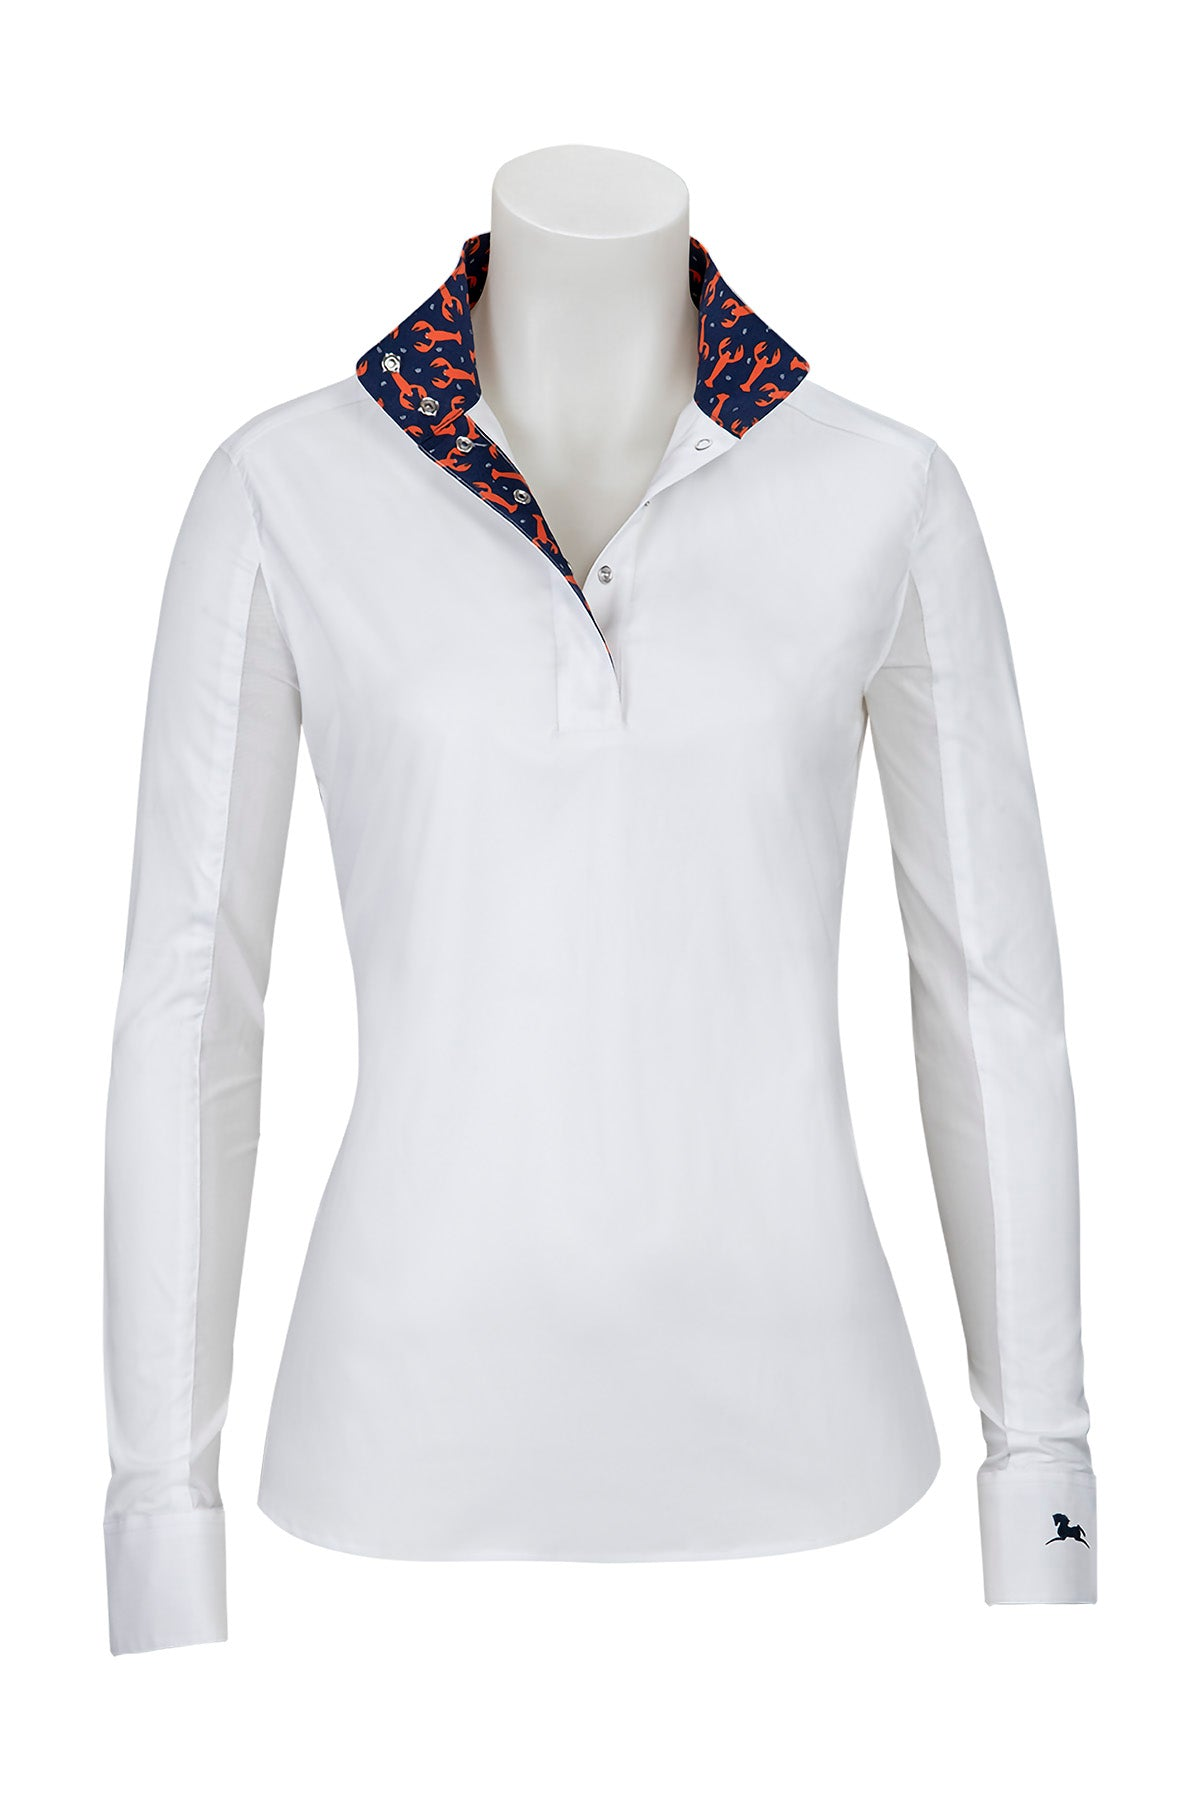 Clearance! Rebecca Lobster Print Show Shirt from R.J. Classics